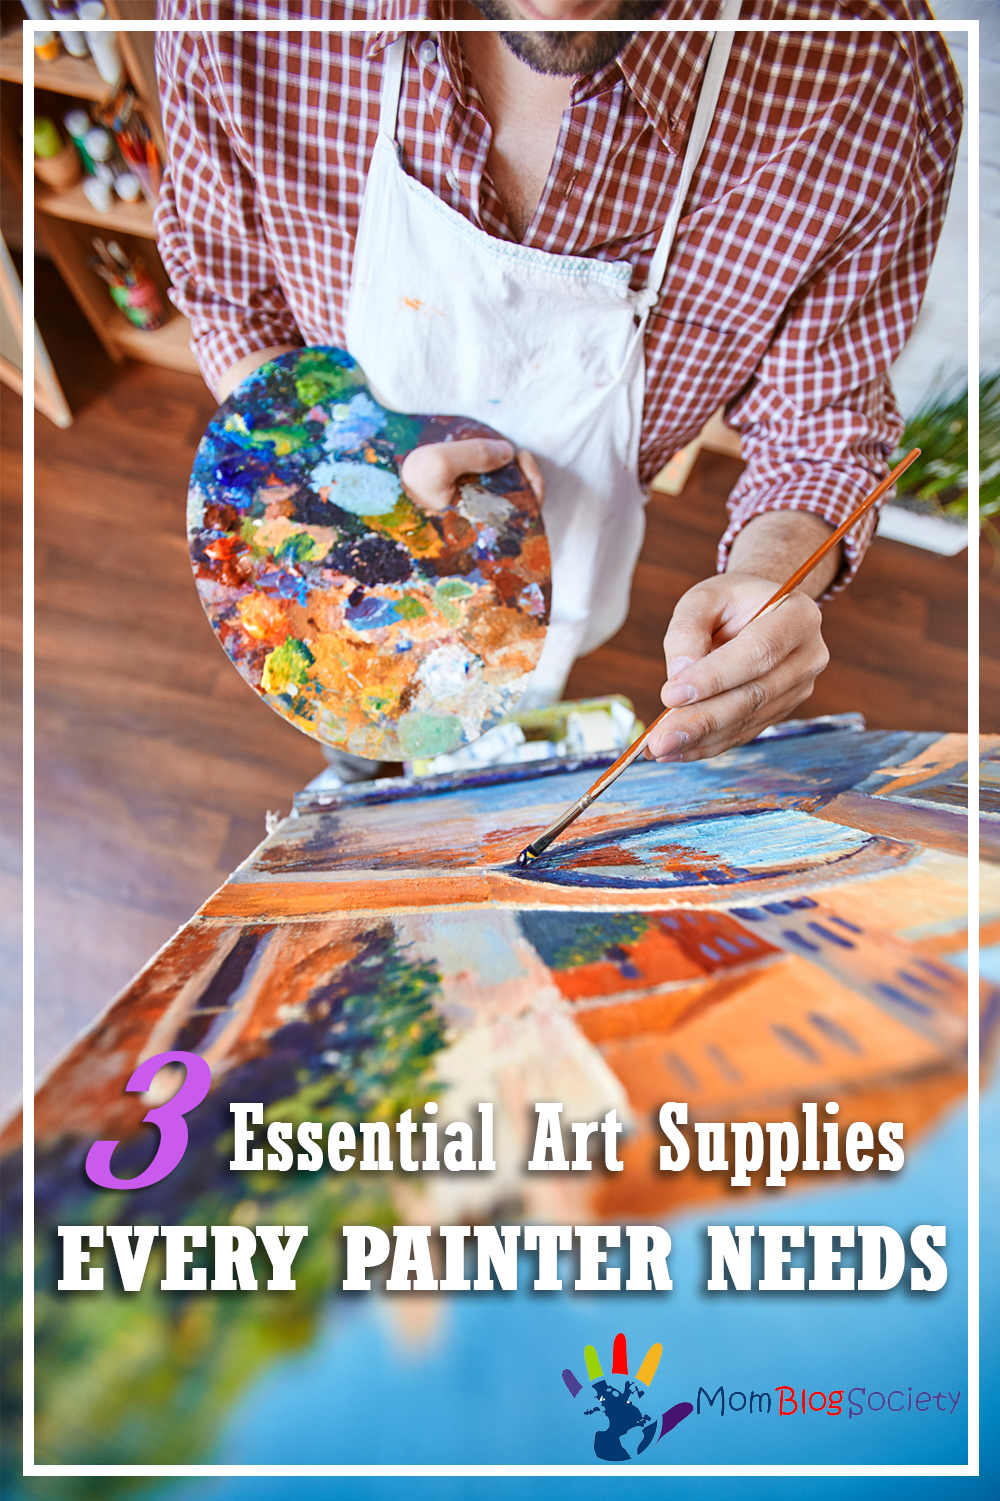 Essential Art Supplies Every Painter Needs